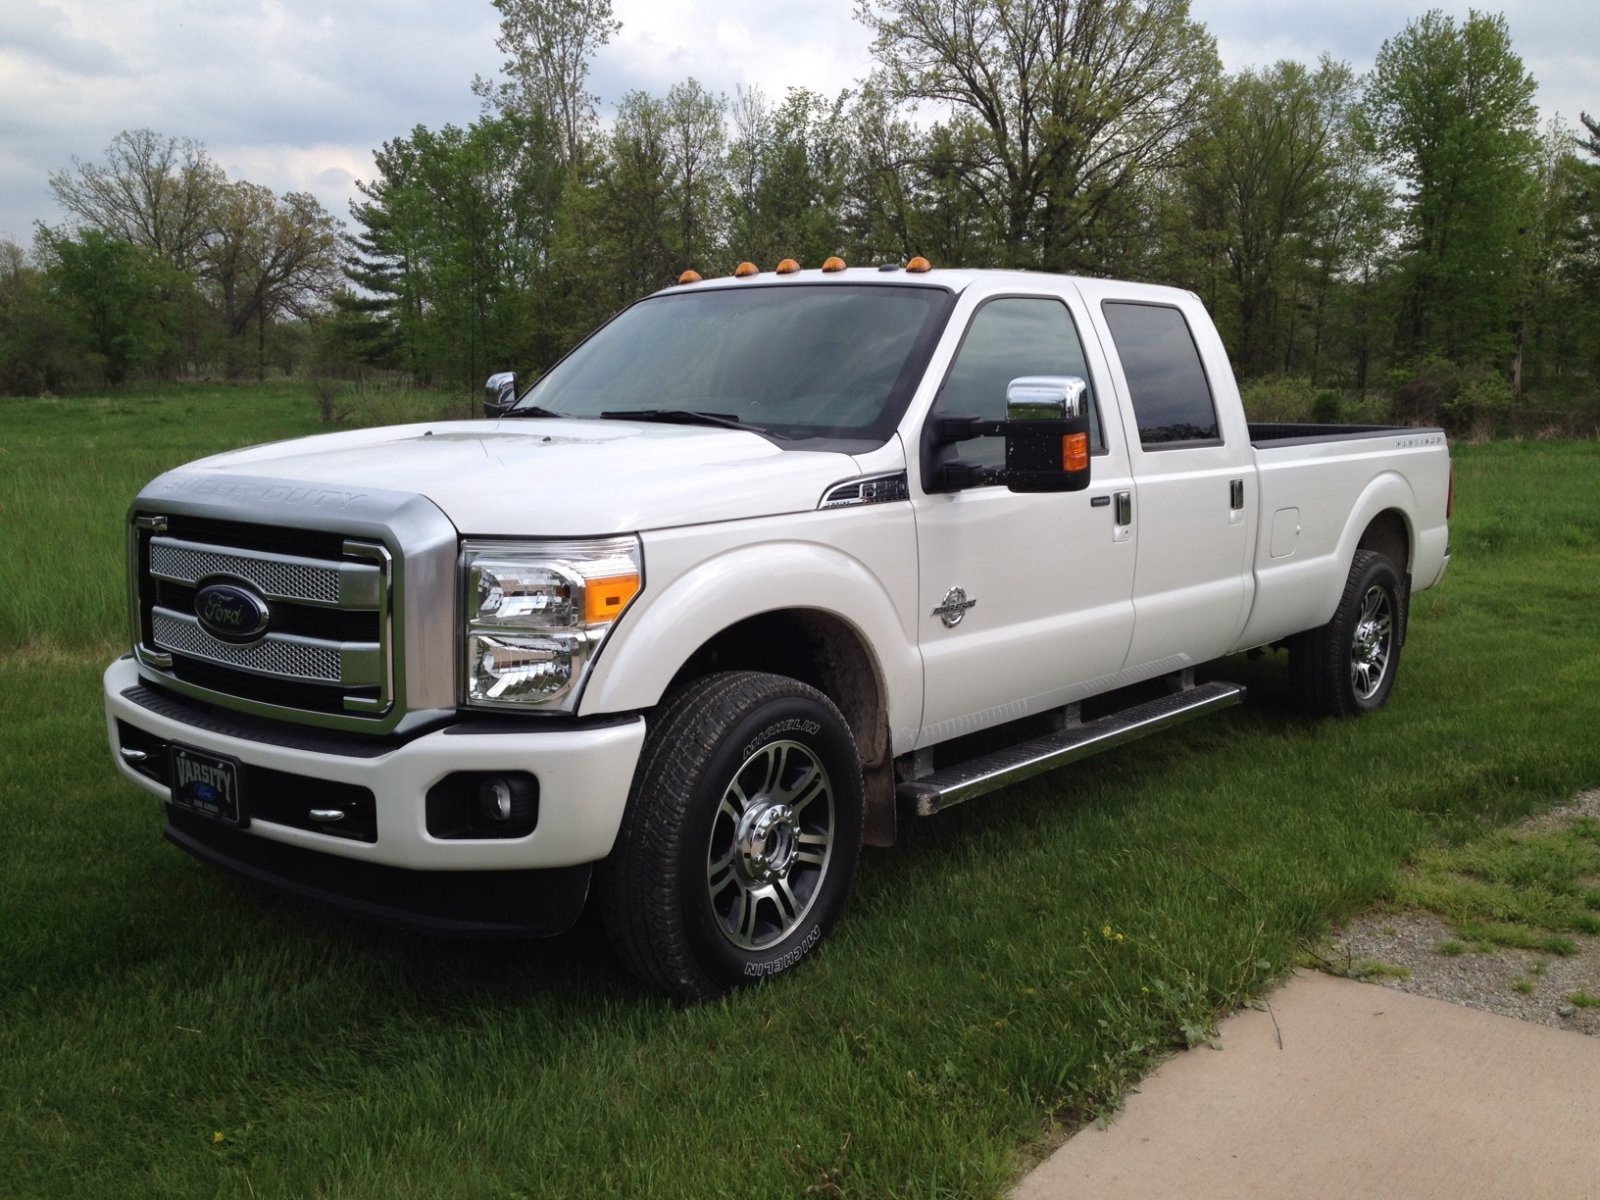 Click image for larger version  Name:F250.jpg Views:73 Size:360.5 KB ID:214152